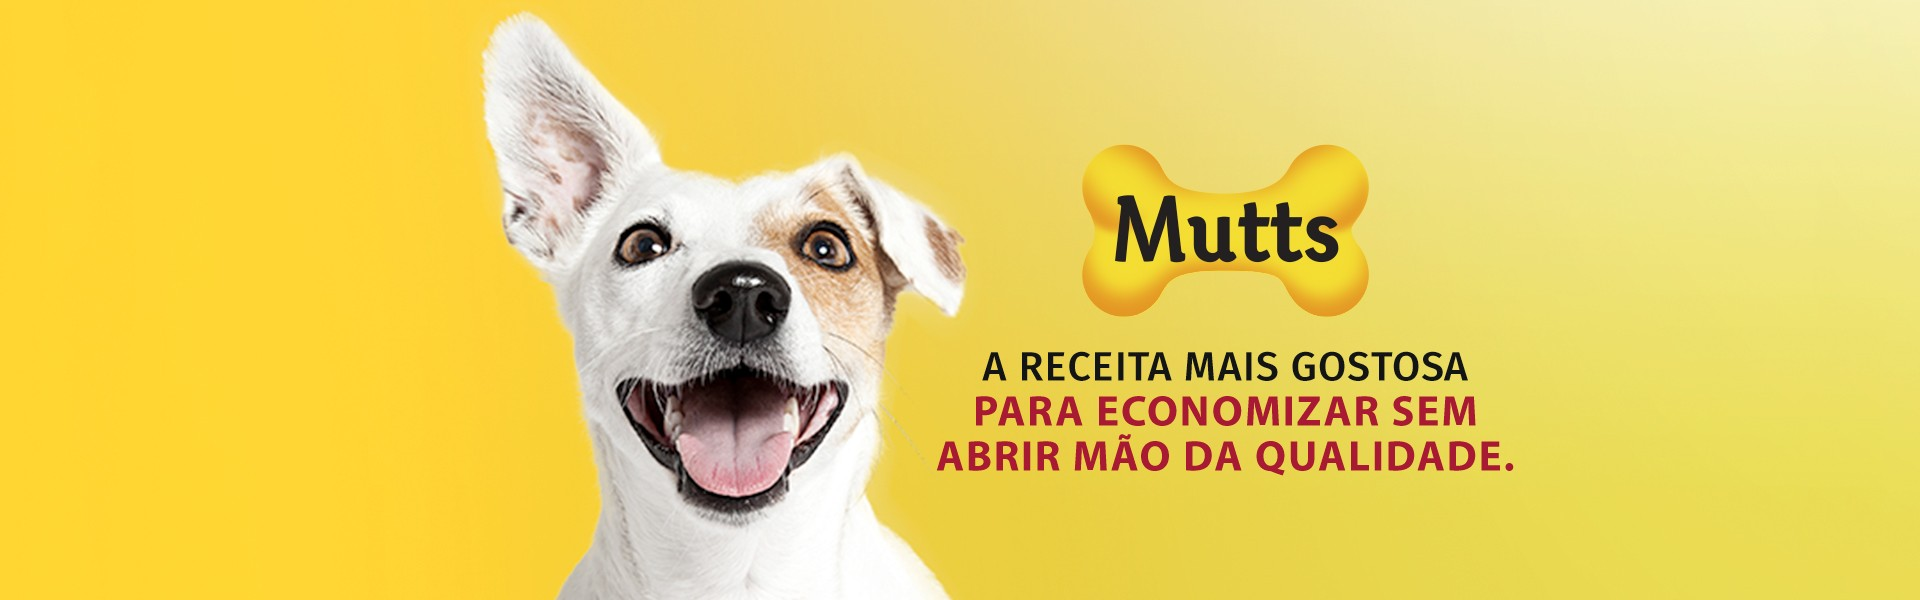 Topo Mutts